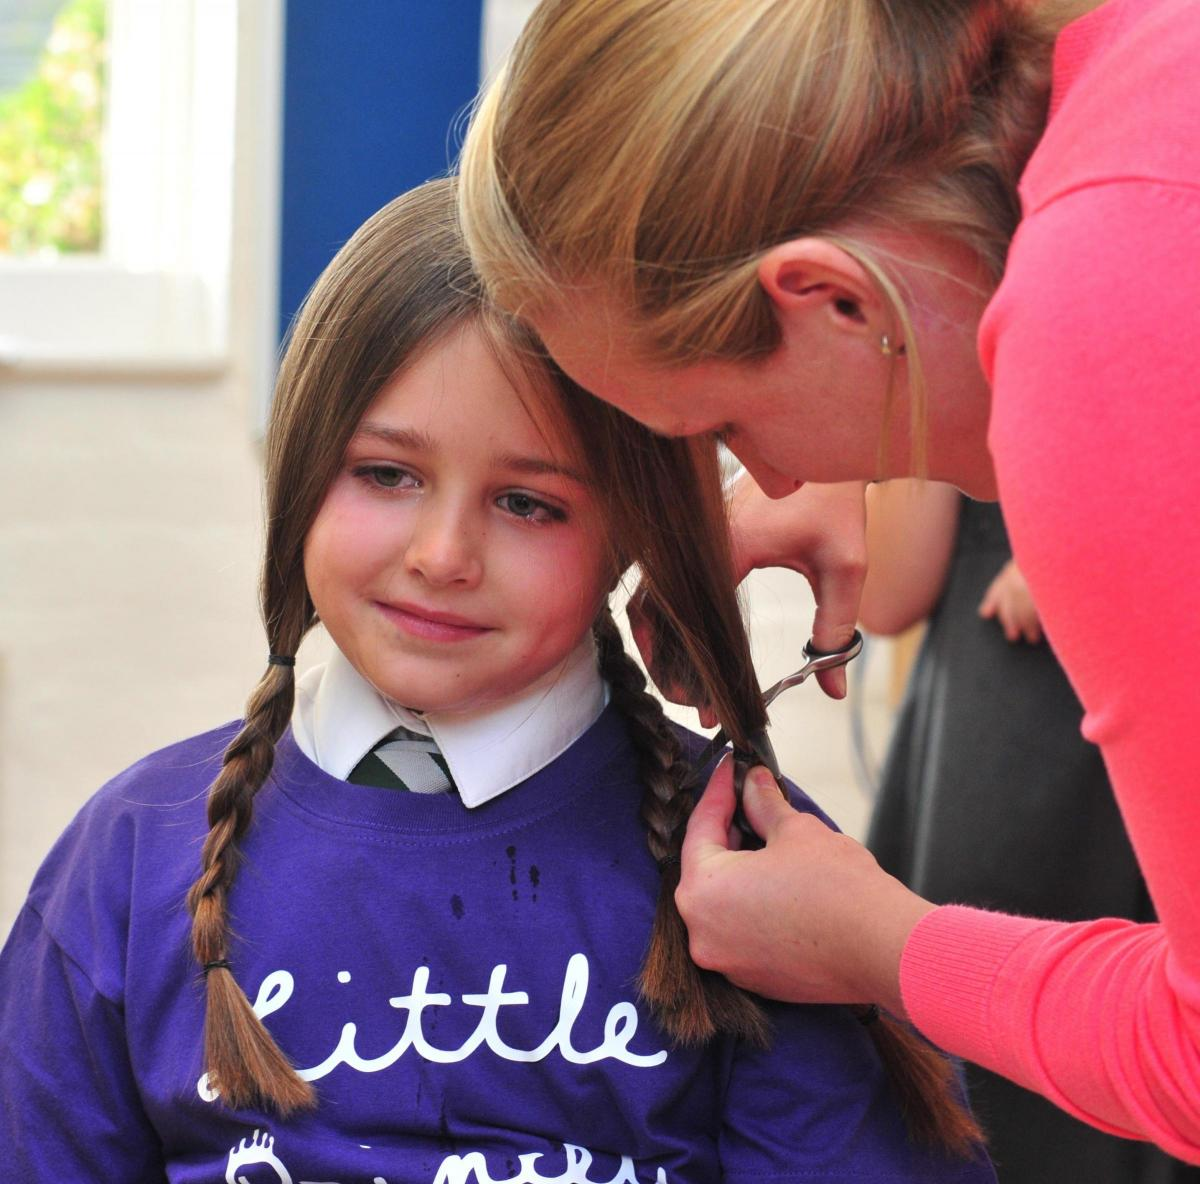 Big Hearted Youngster From Wichenford Has Hair Cut For Little